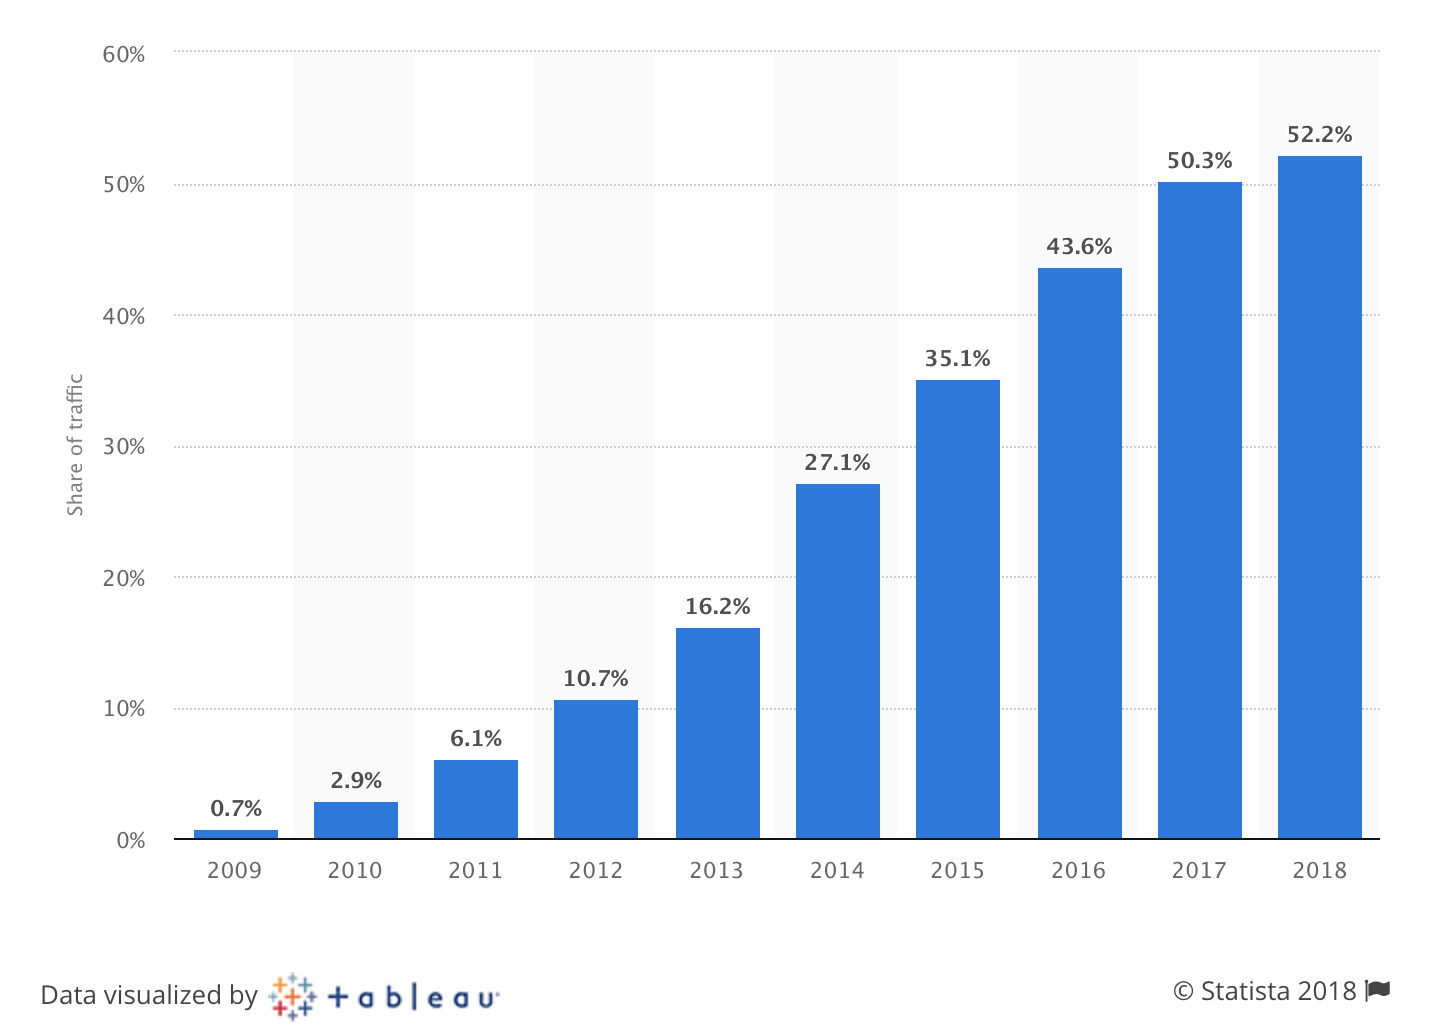 Disruptive Technology: Percentage of mobile traffic over year